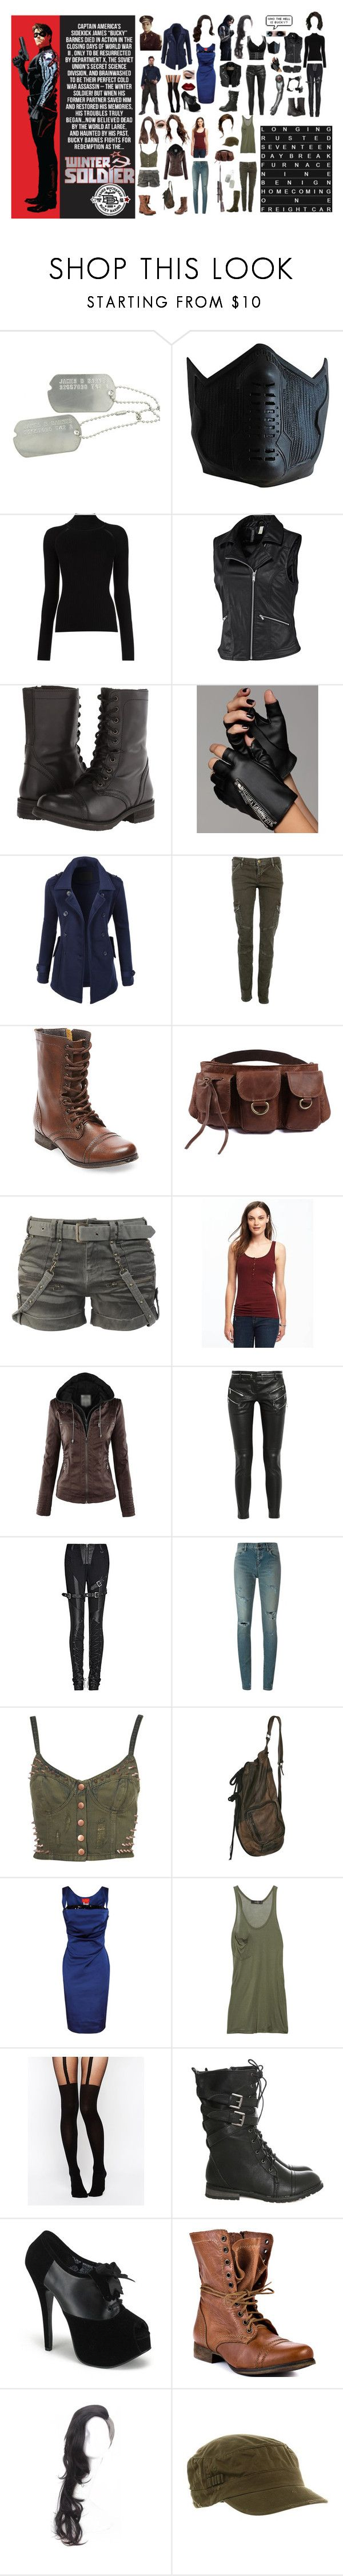 8459 Best Clothing Images On Pinterest Bucky Barnes Marvel Manzone Mens Top Broonze 1 Maroon Xl Winter Solider By Artsysex Liked Polyvore Featuring Sebastian Professional Misha Nonoo